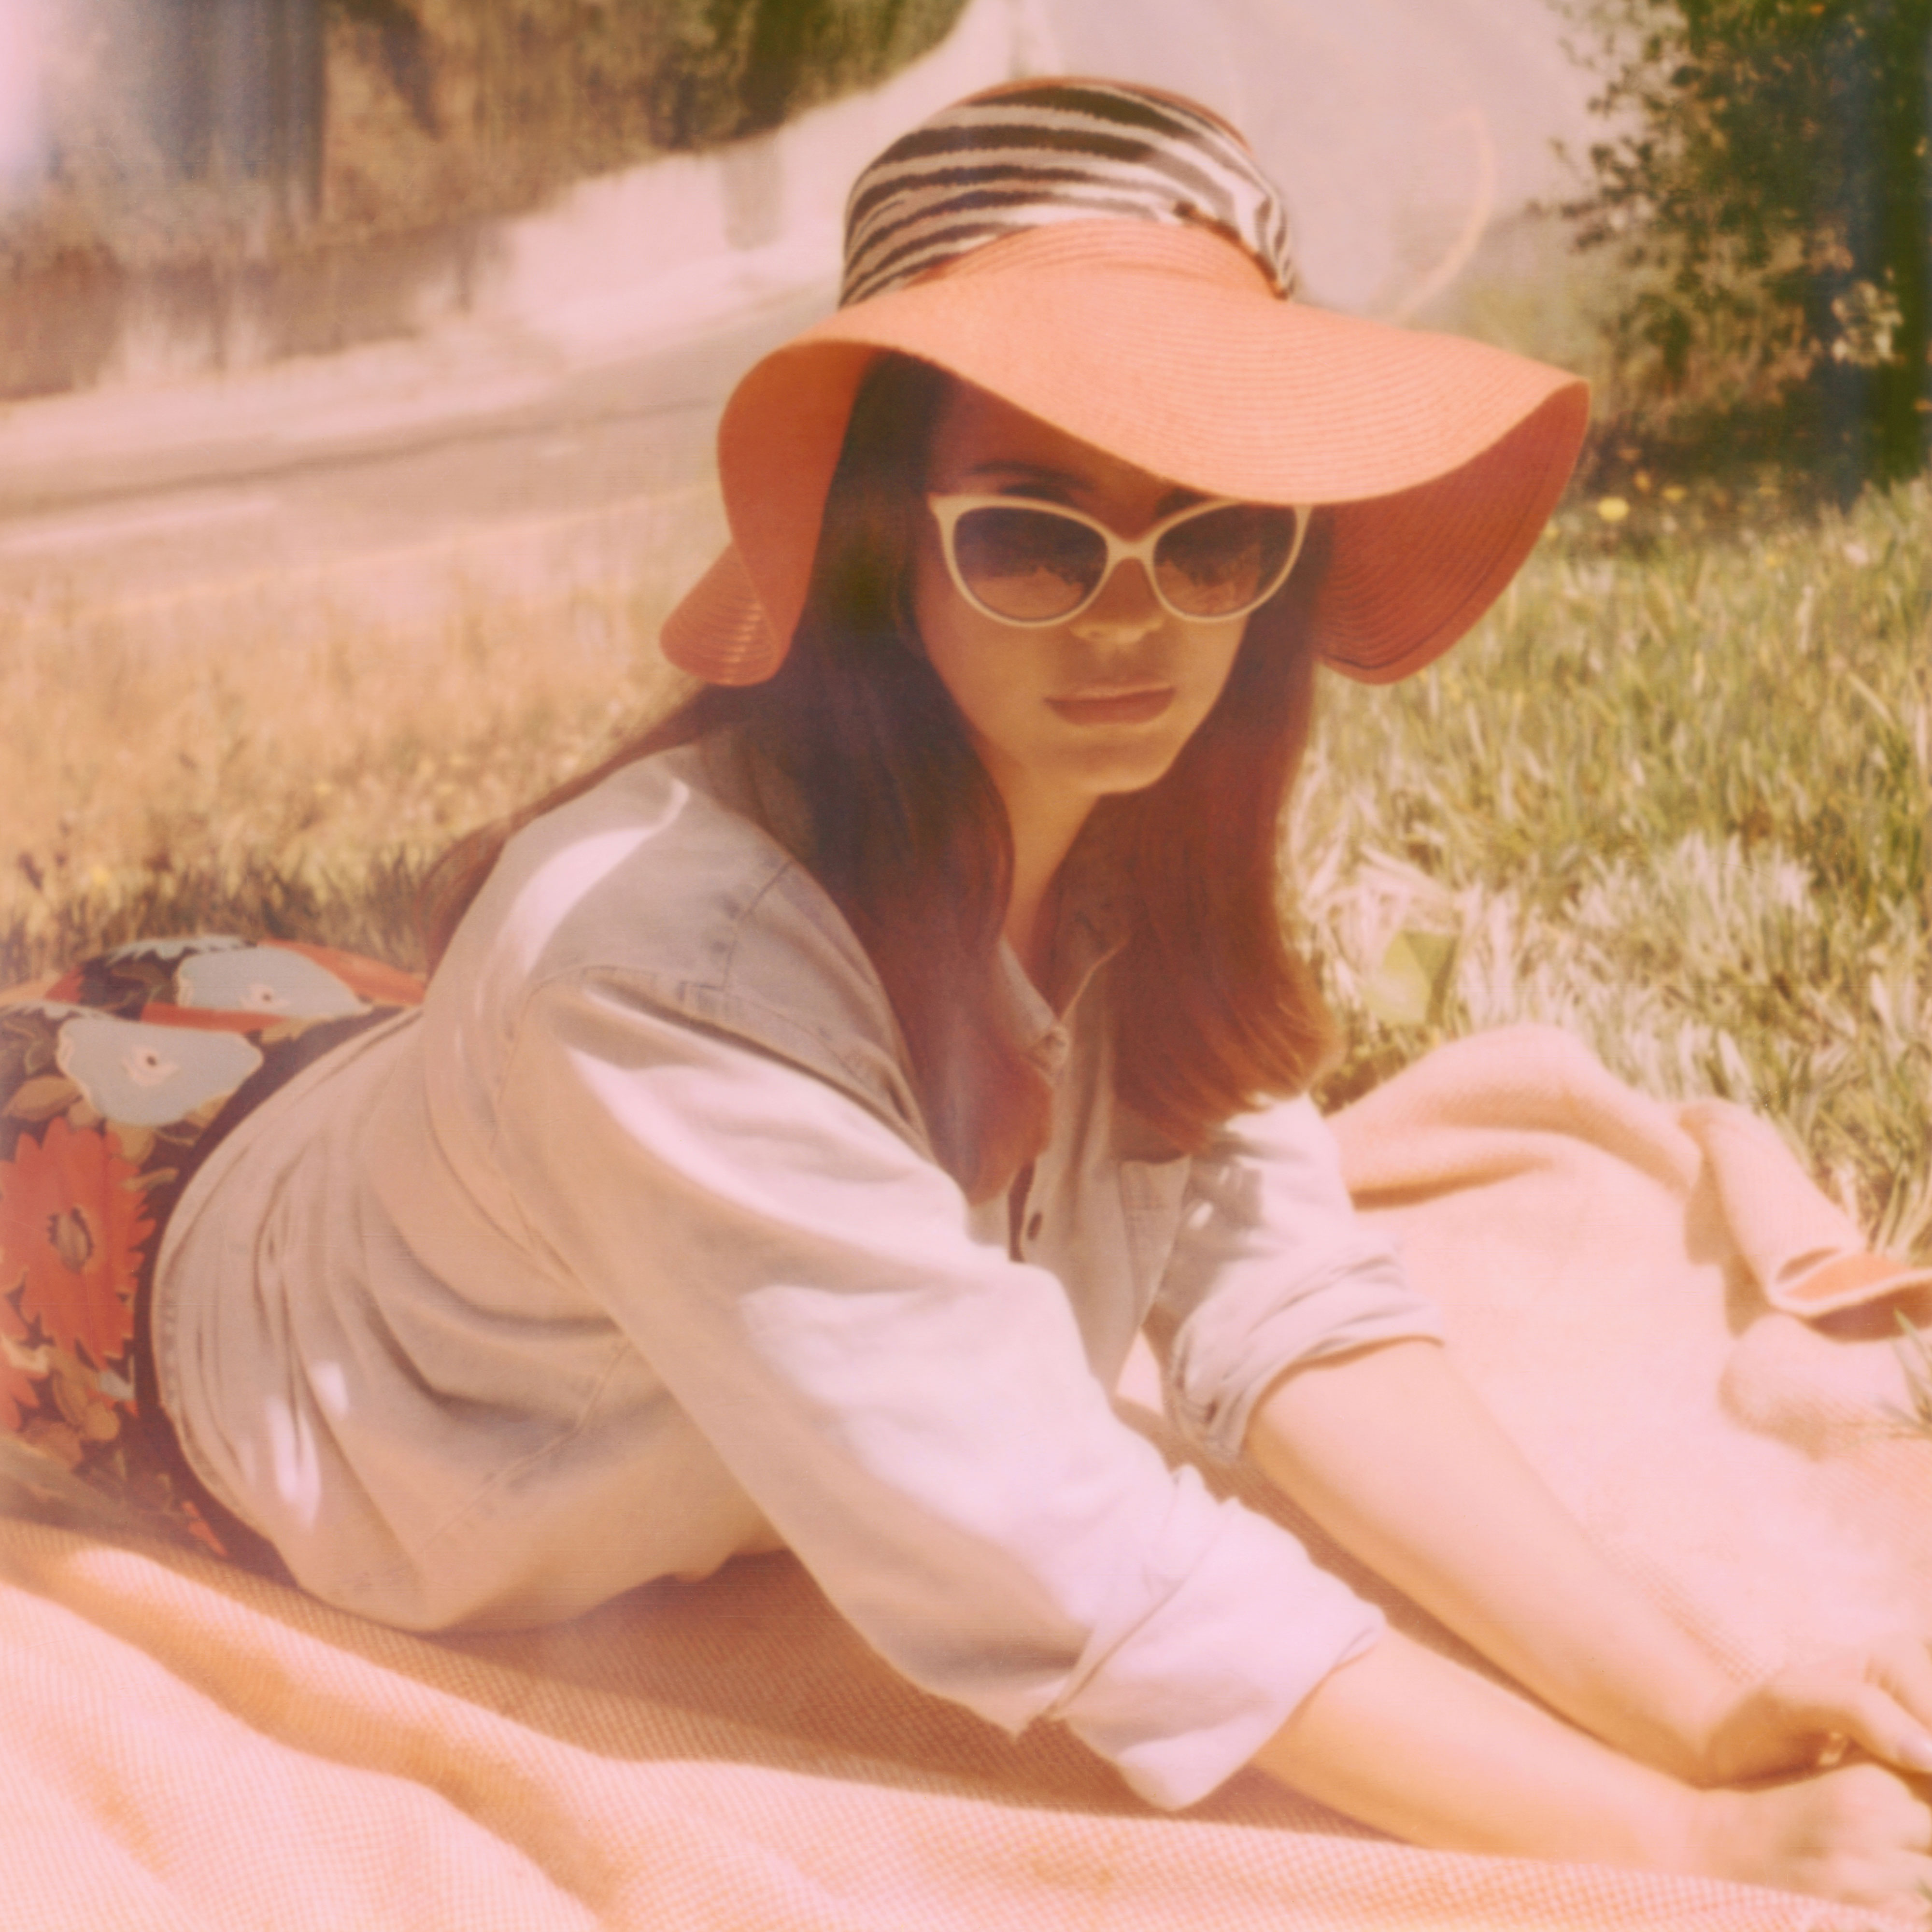 Images Uploads Gallery 21 Lana Del Rey Honeymoon Neil Krug